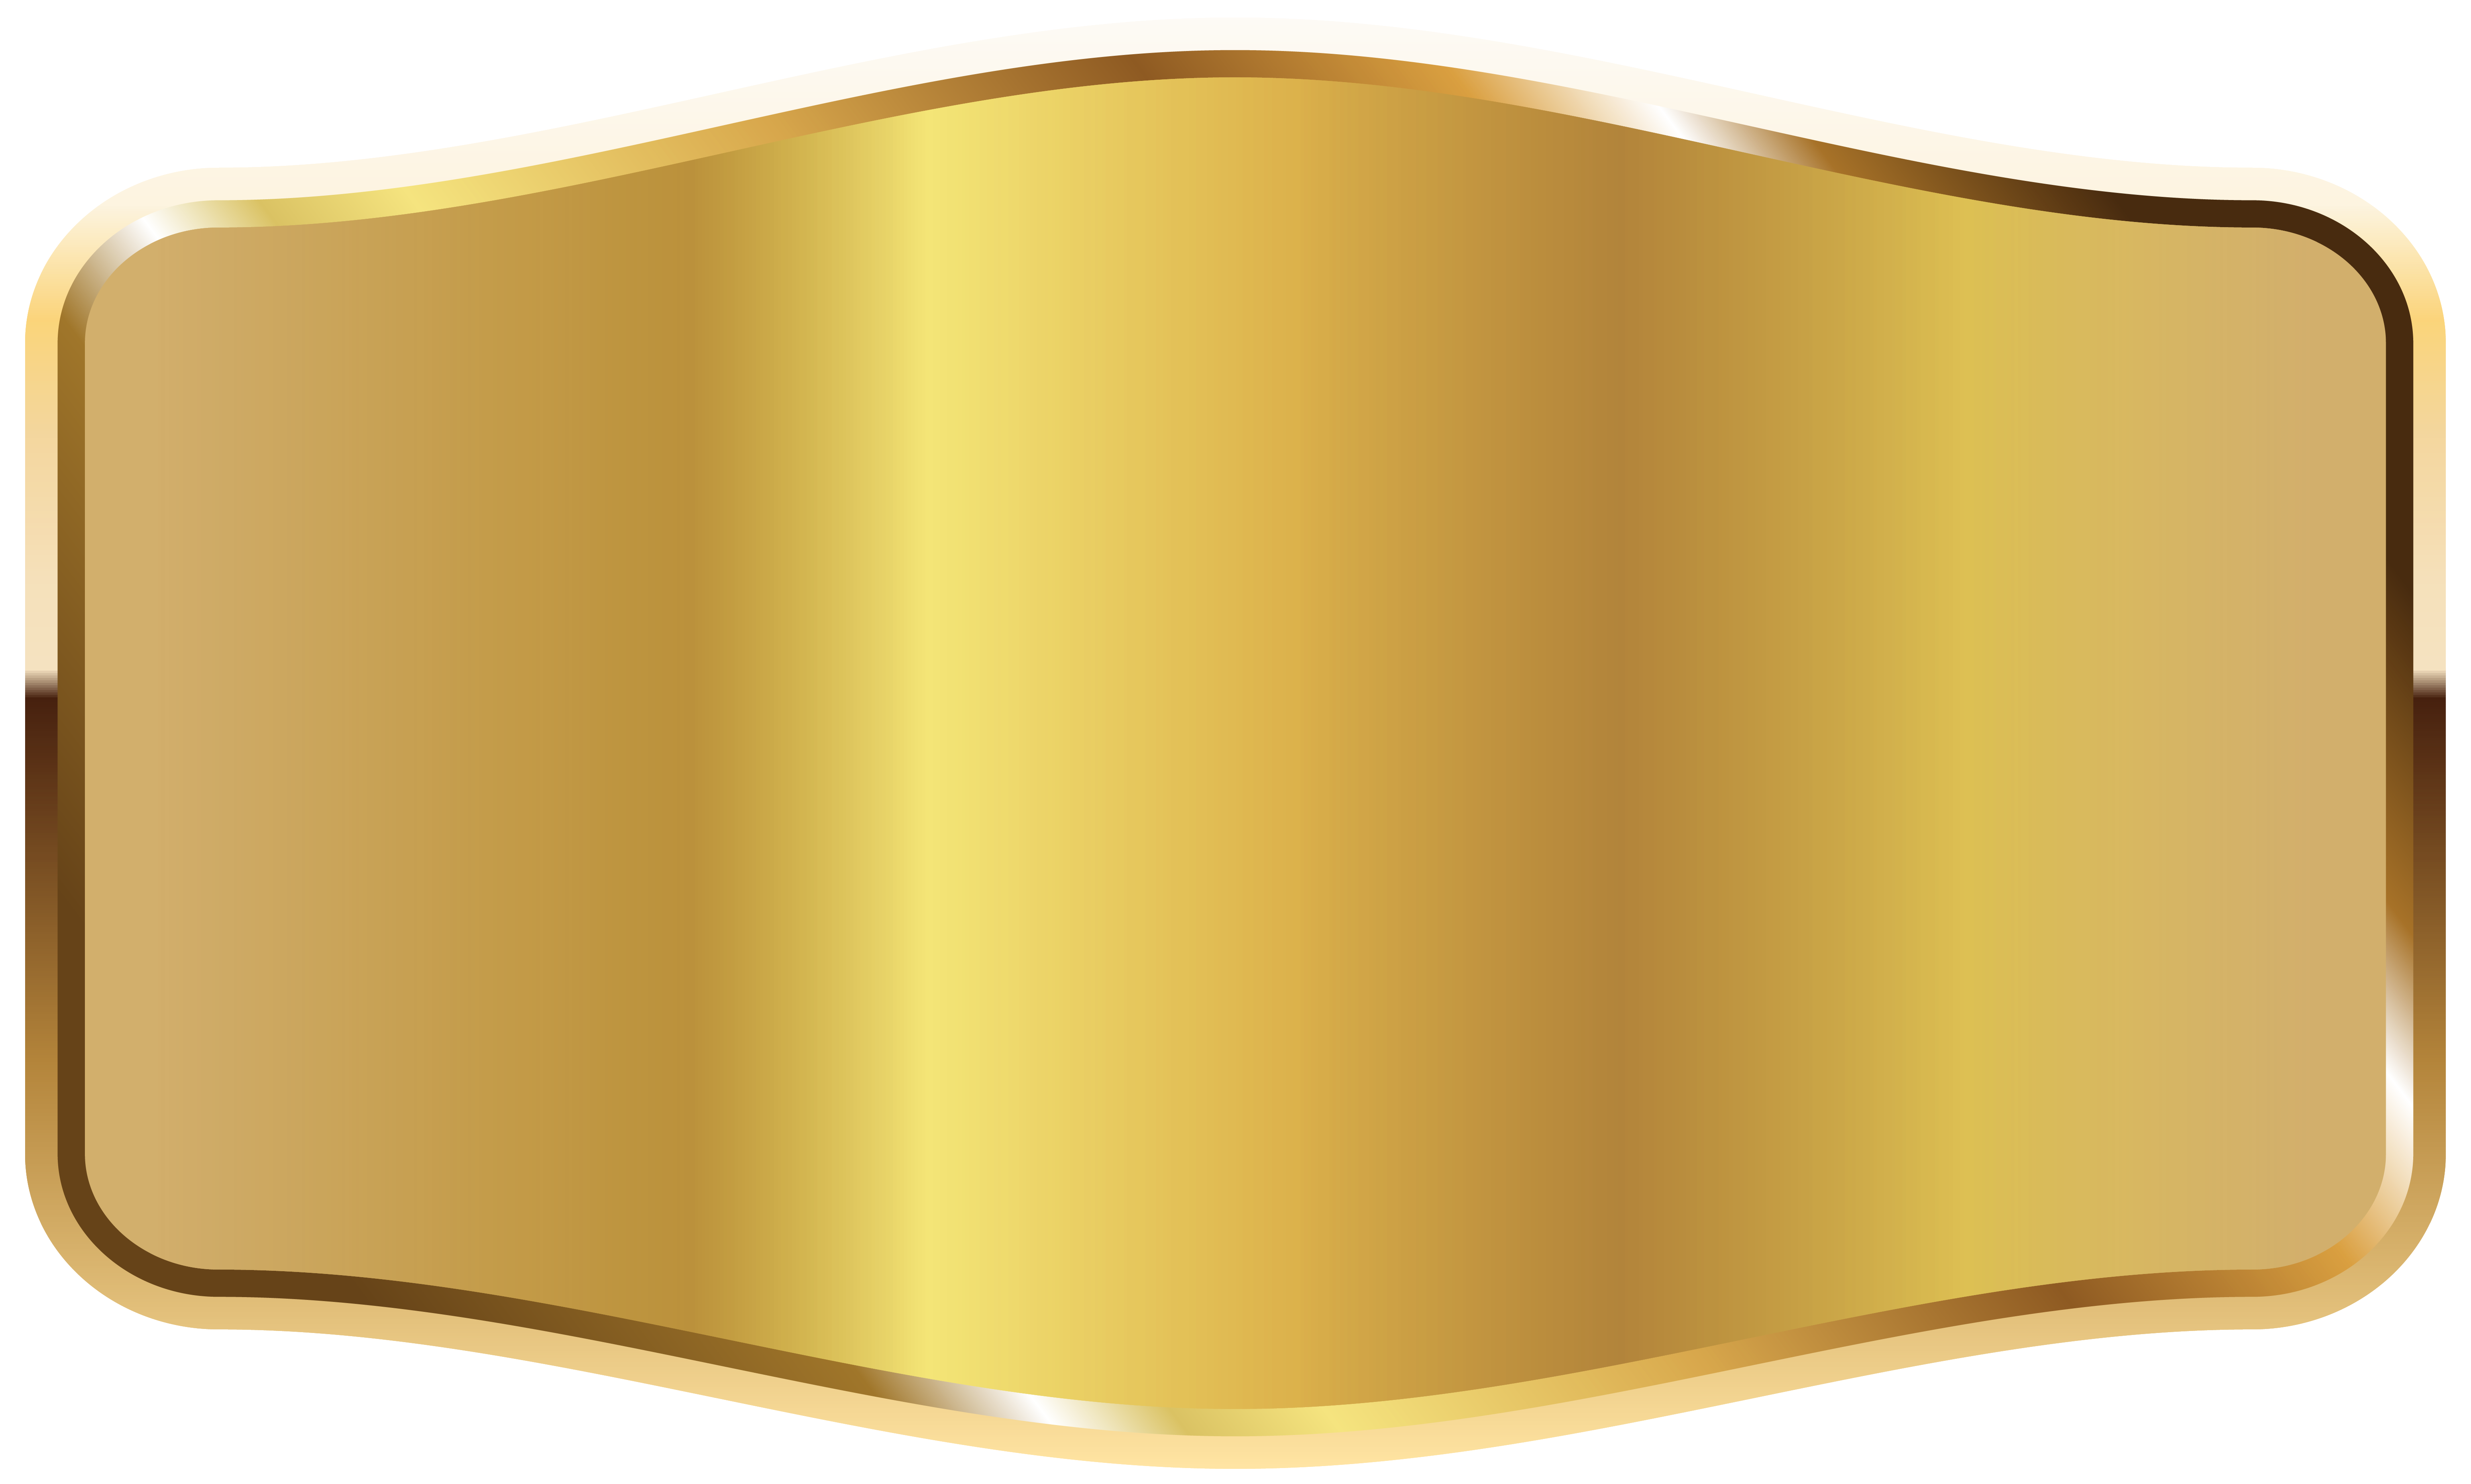 Golden label png. Gold clipart picture gallery